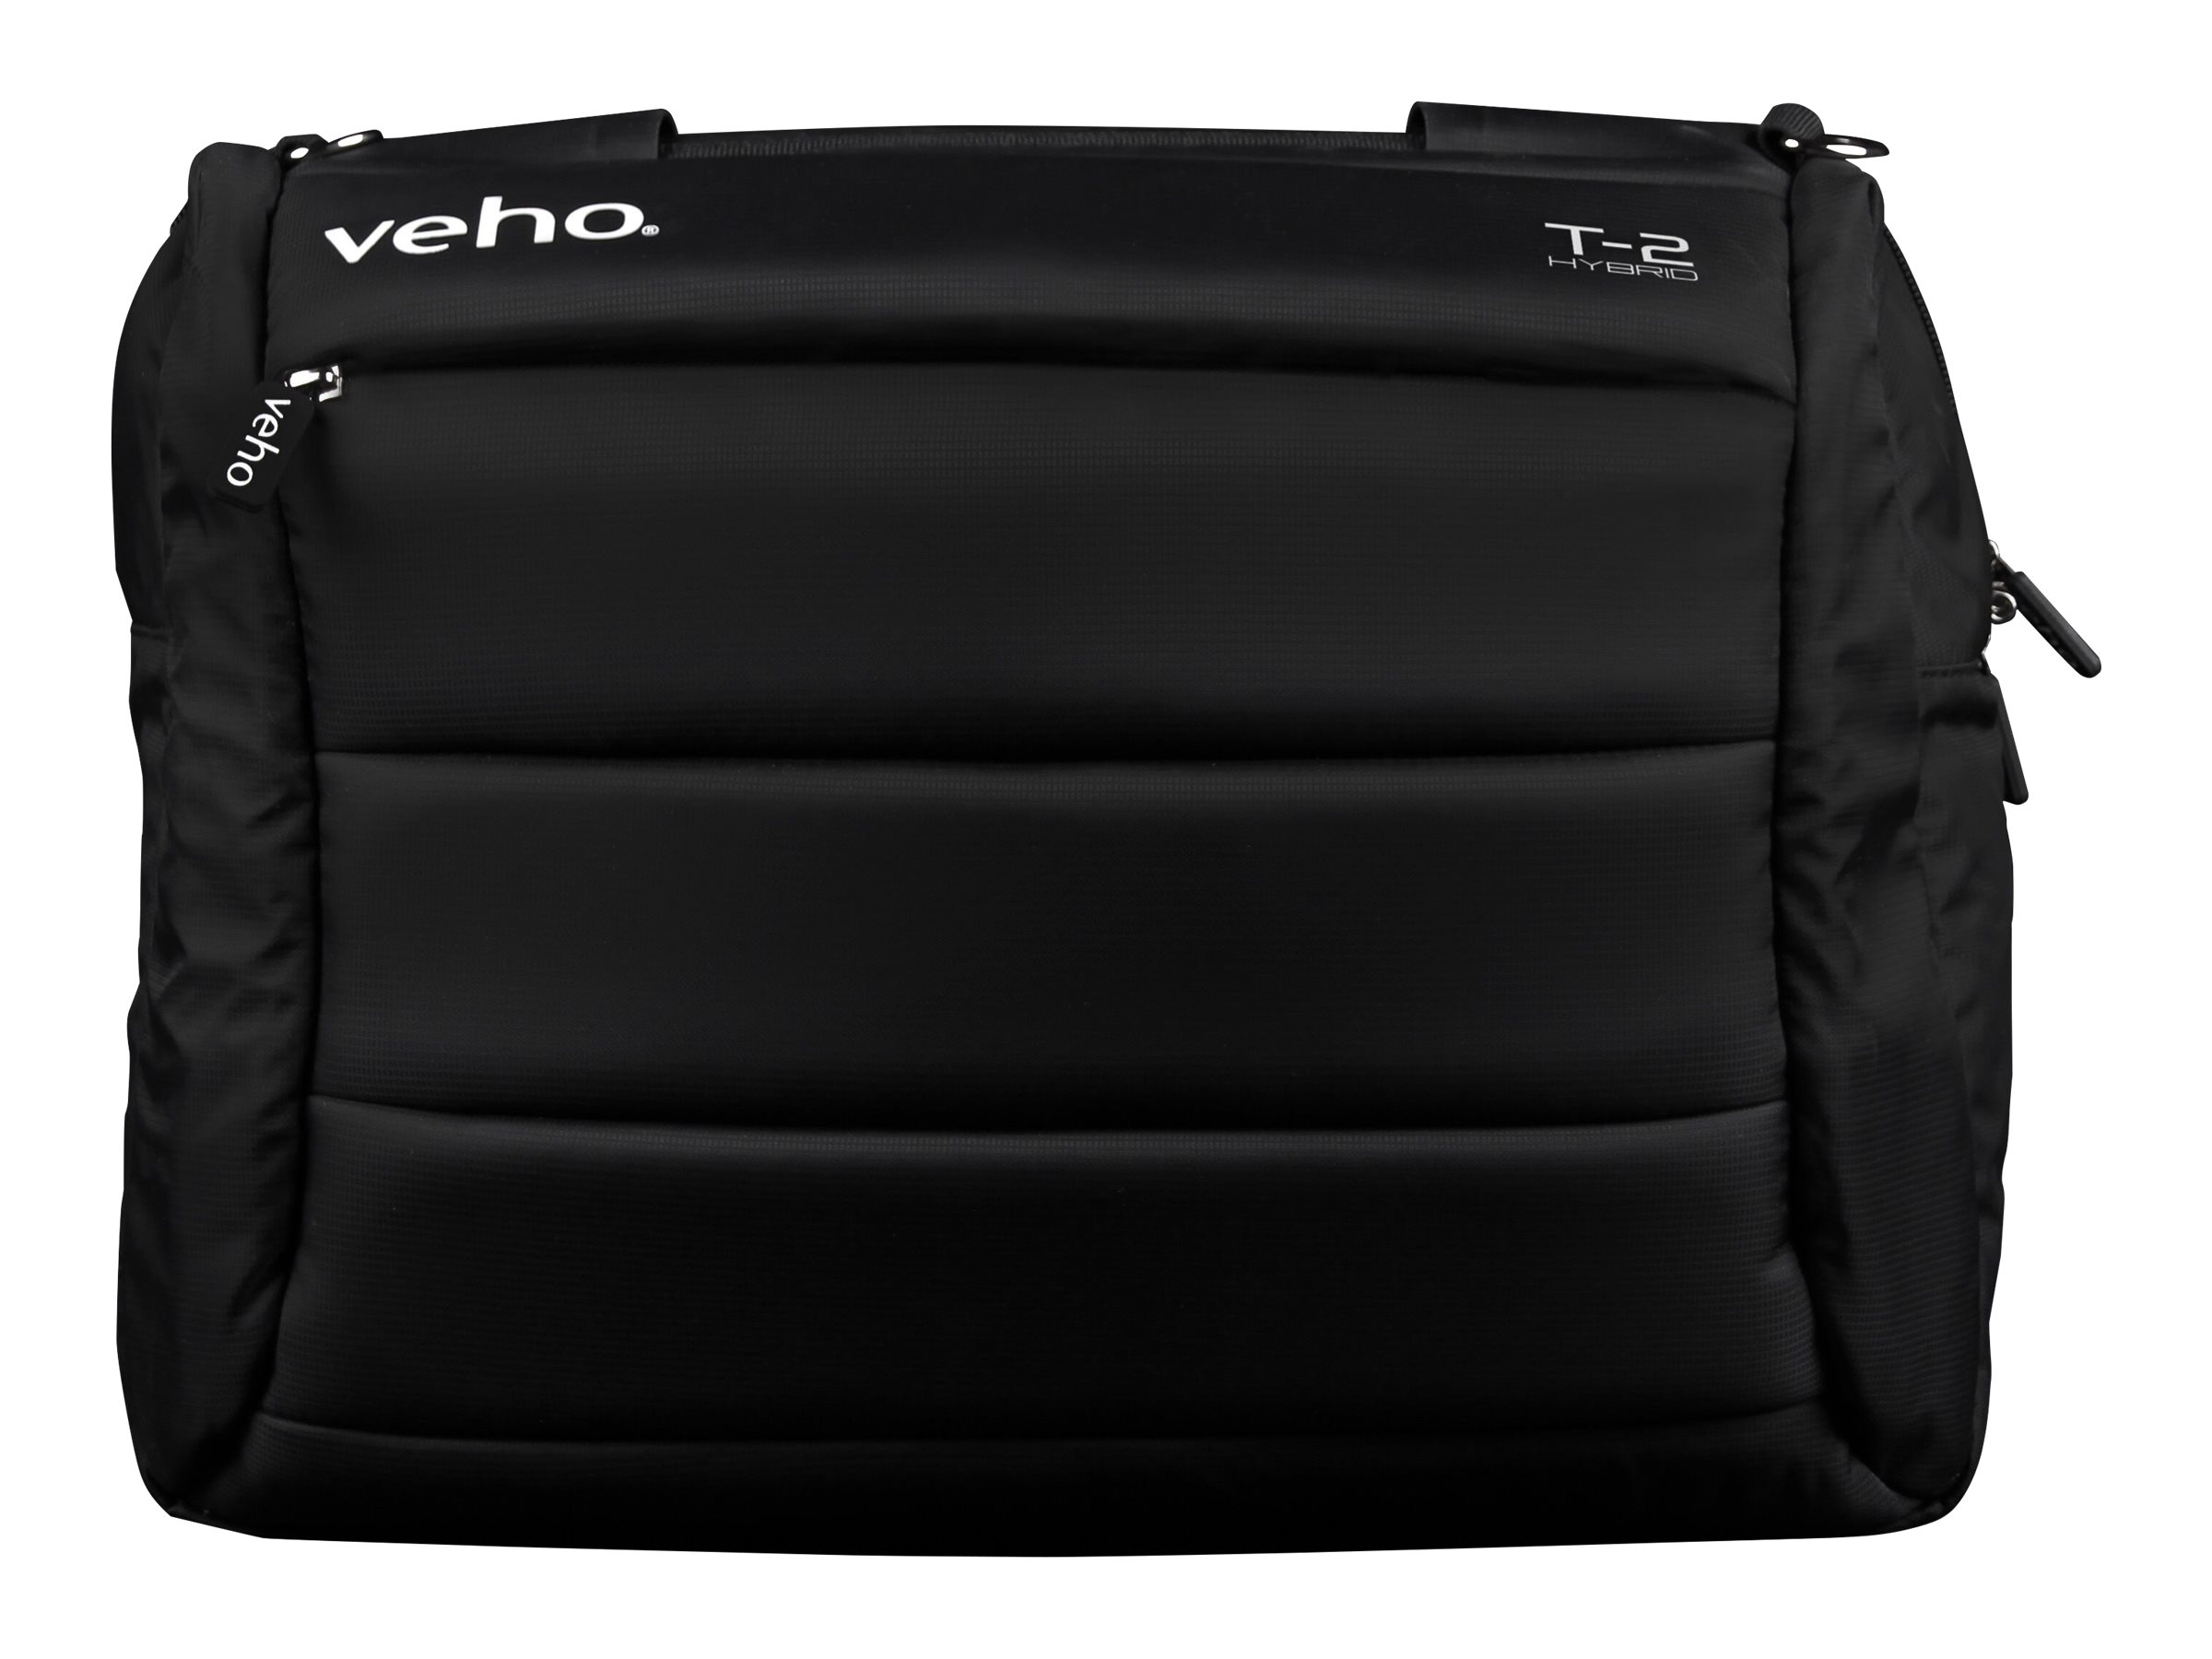 Image for Veho Hybrid Super Padded Bag With Rucksack / Backpack Option For Laptop / Notebook from Circuit City